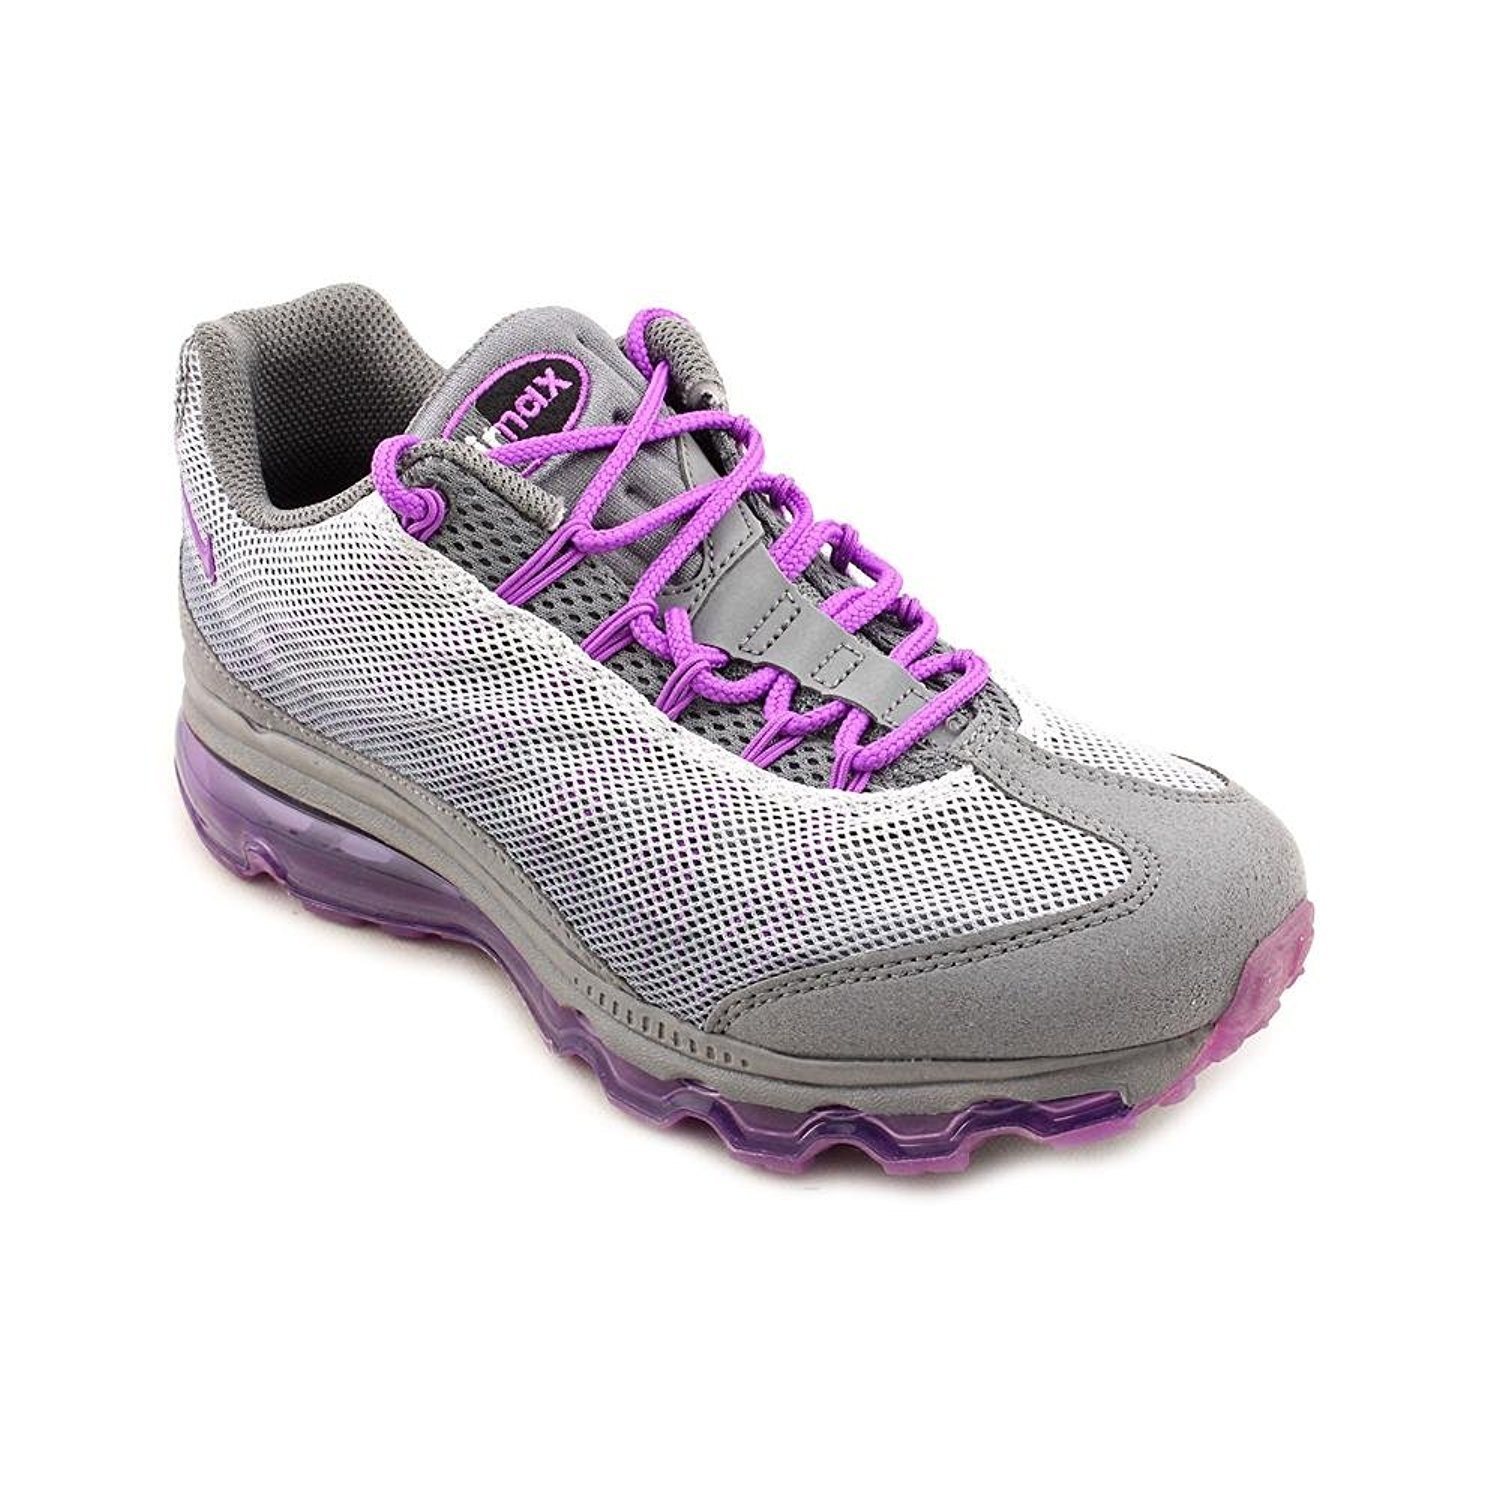 sports shoes 4a2b7 4237c Amazon.com | WMNS AIR MAX 95 DYN FW - Womens Running Sneaker ...